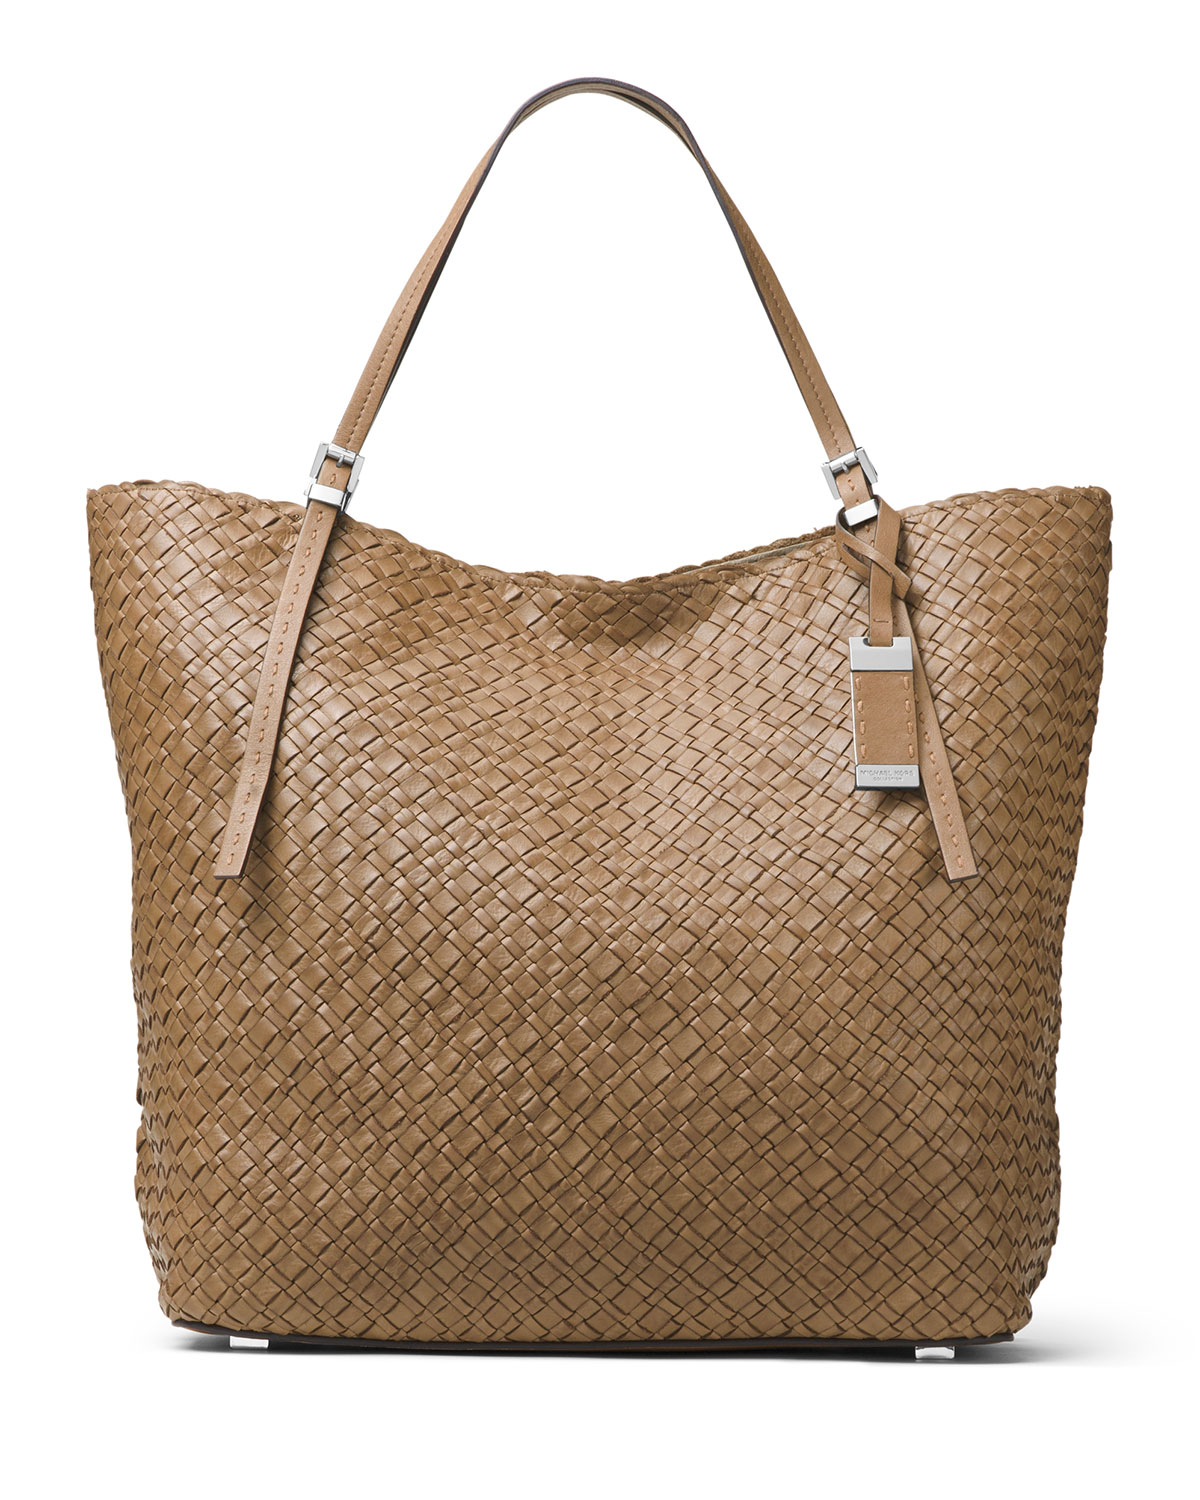 Hutton Large Woven Leather Tote Bag Luggage